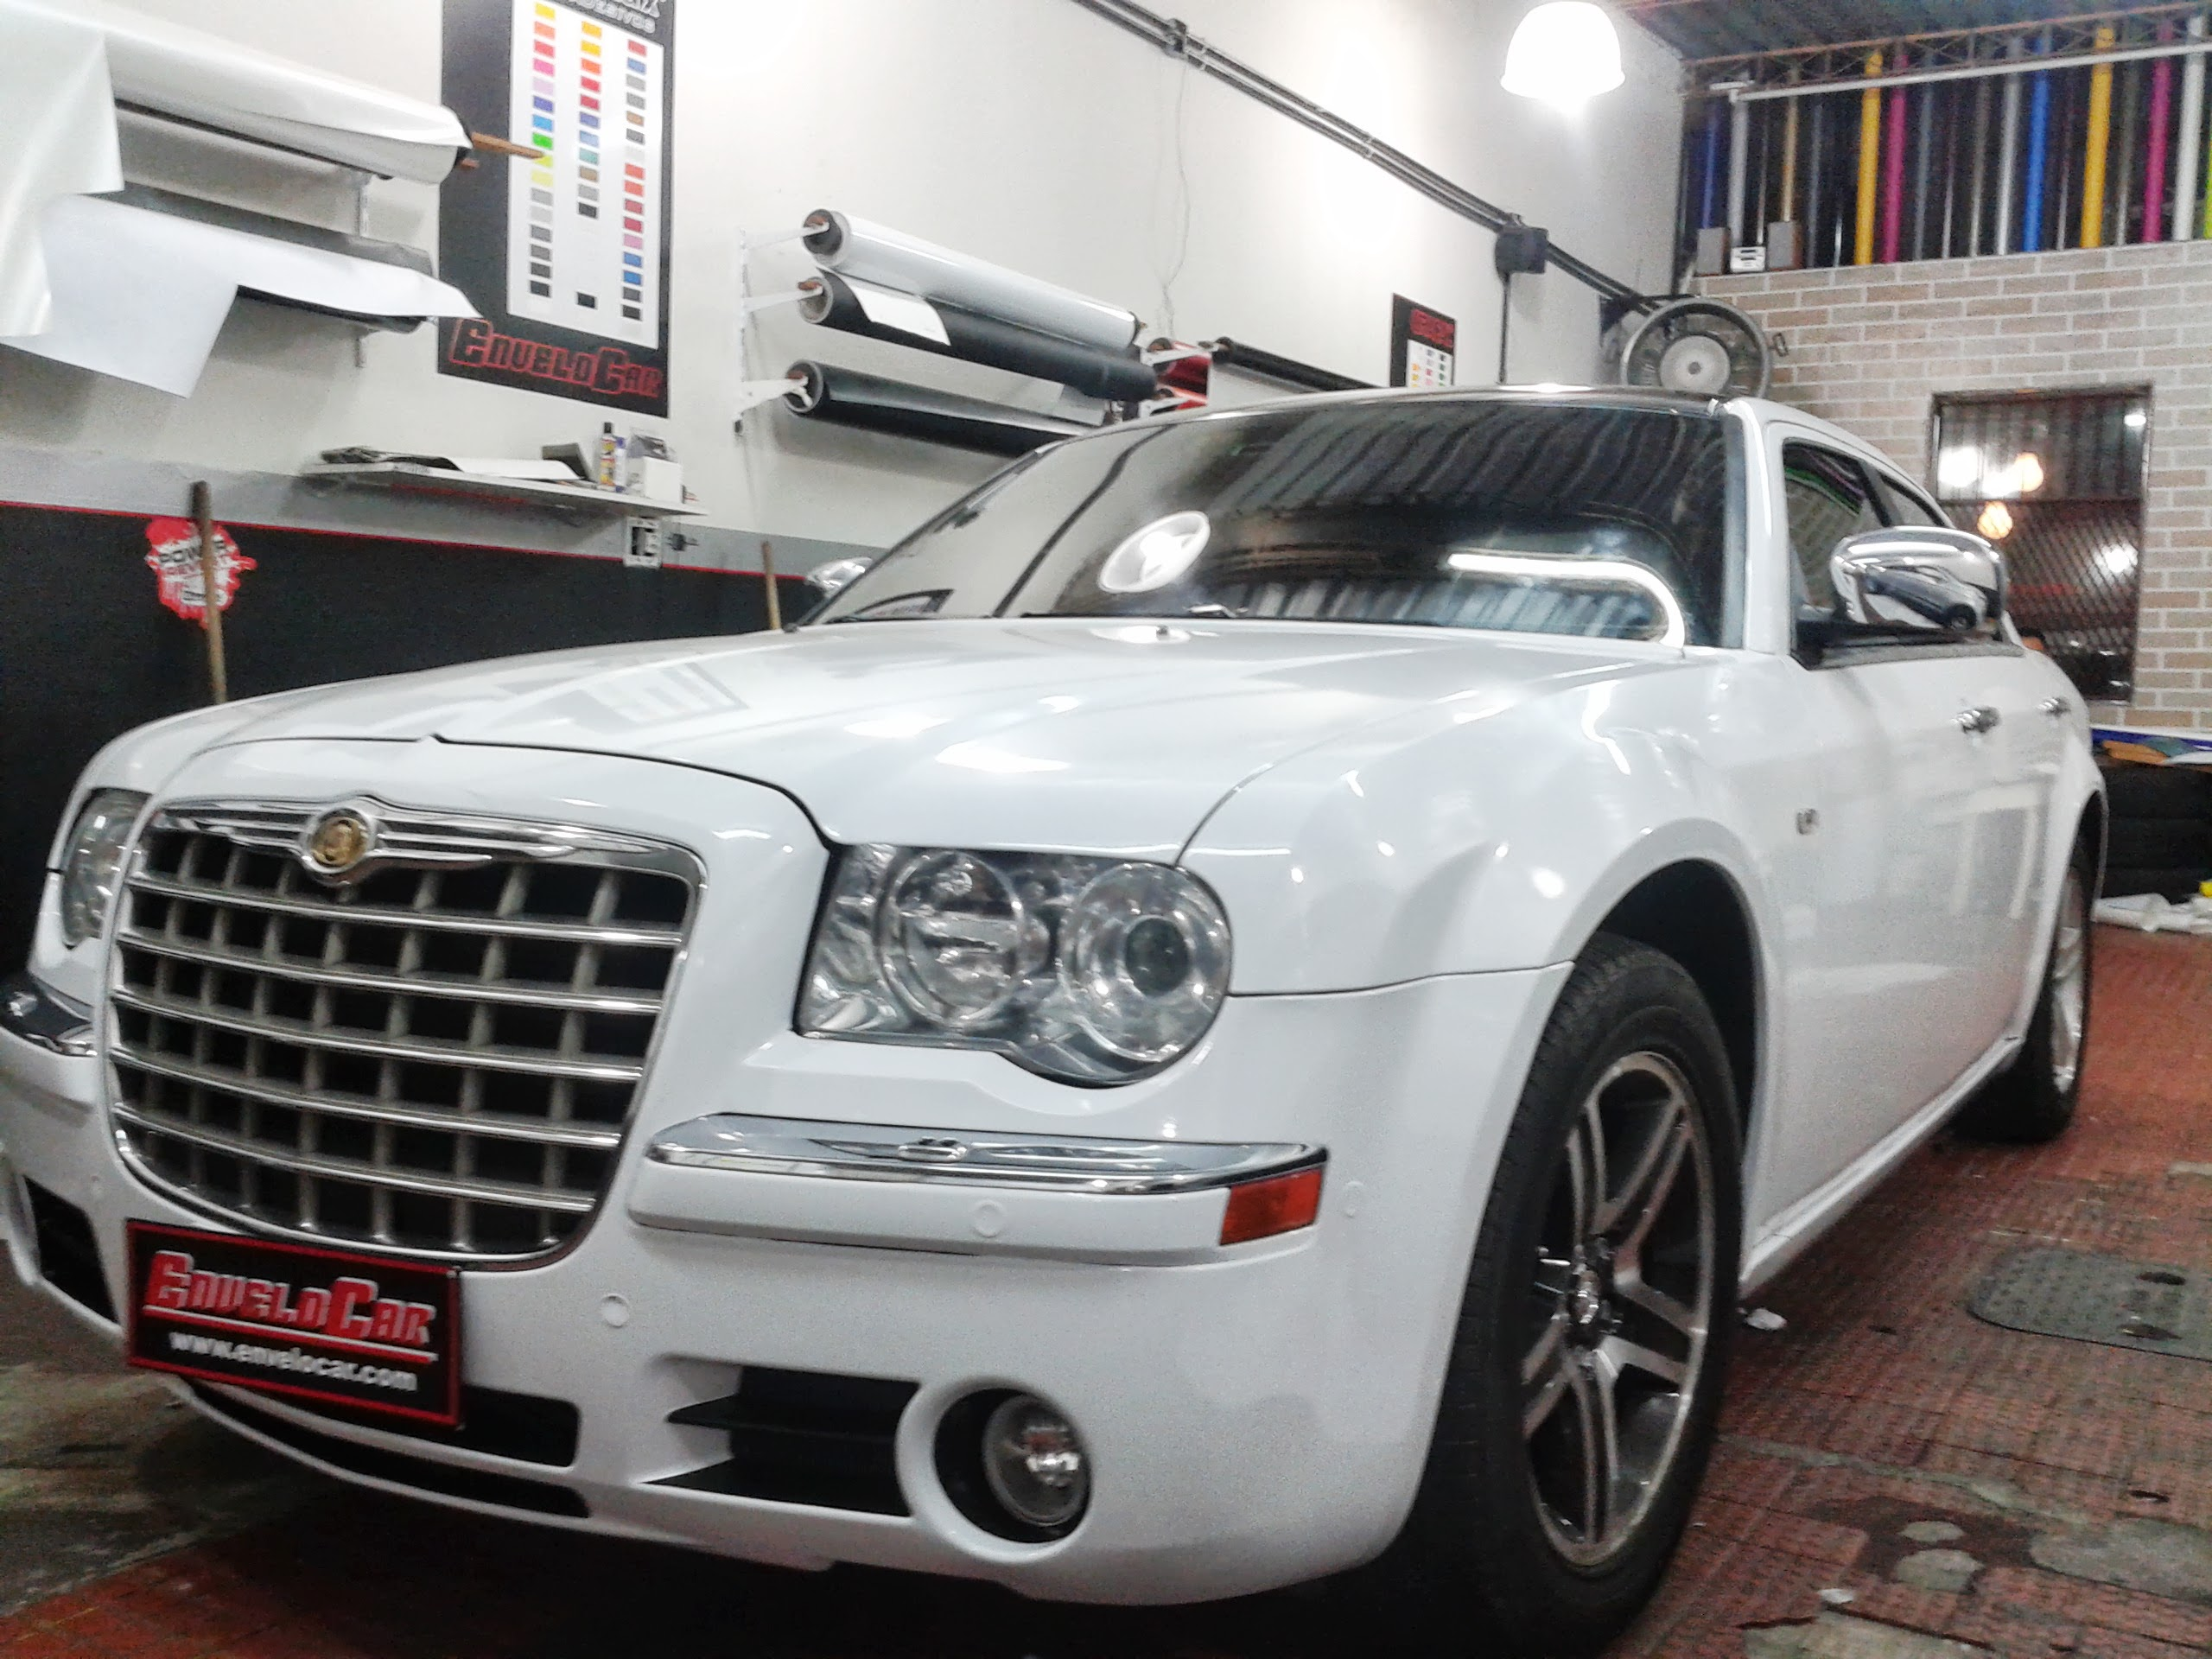 CHRYSLER 300C ENVELOPAMENTO BRANCO (5).jpg